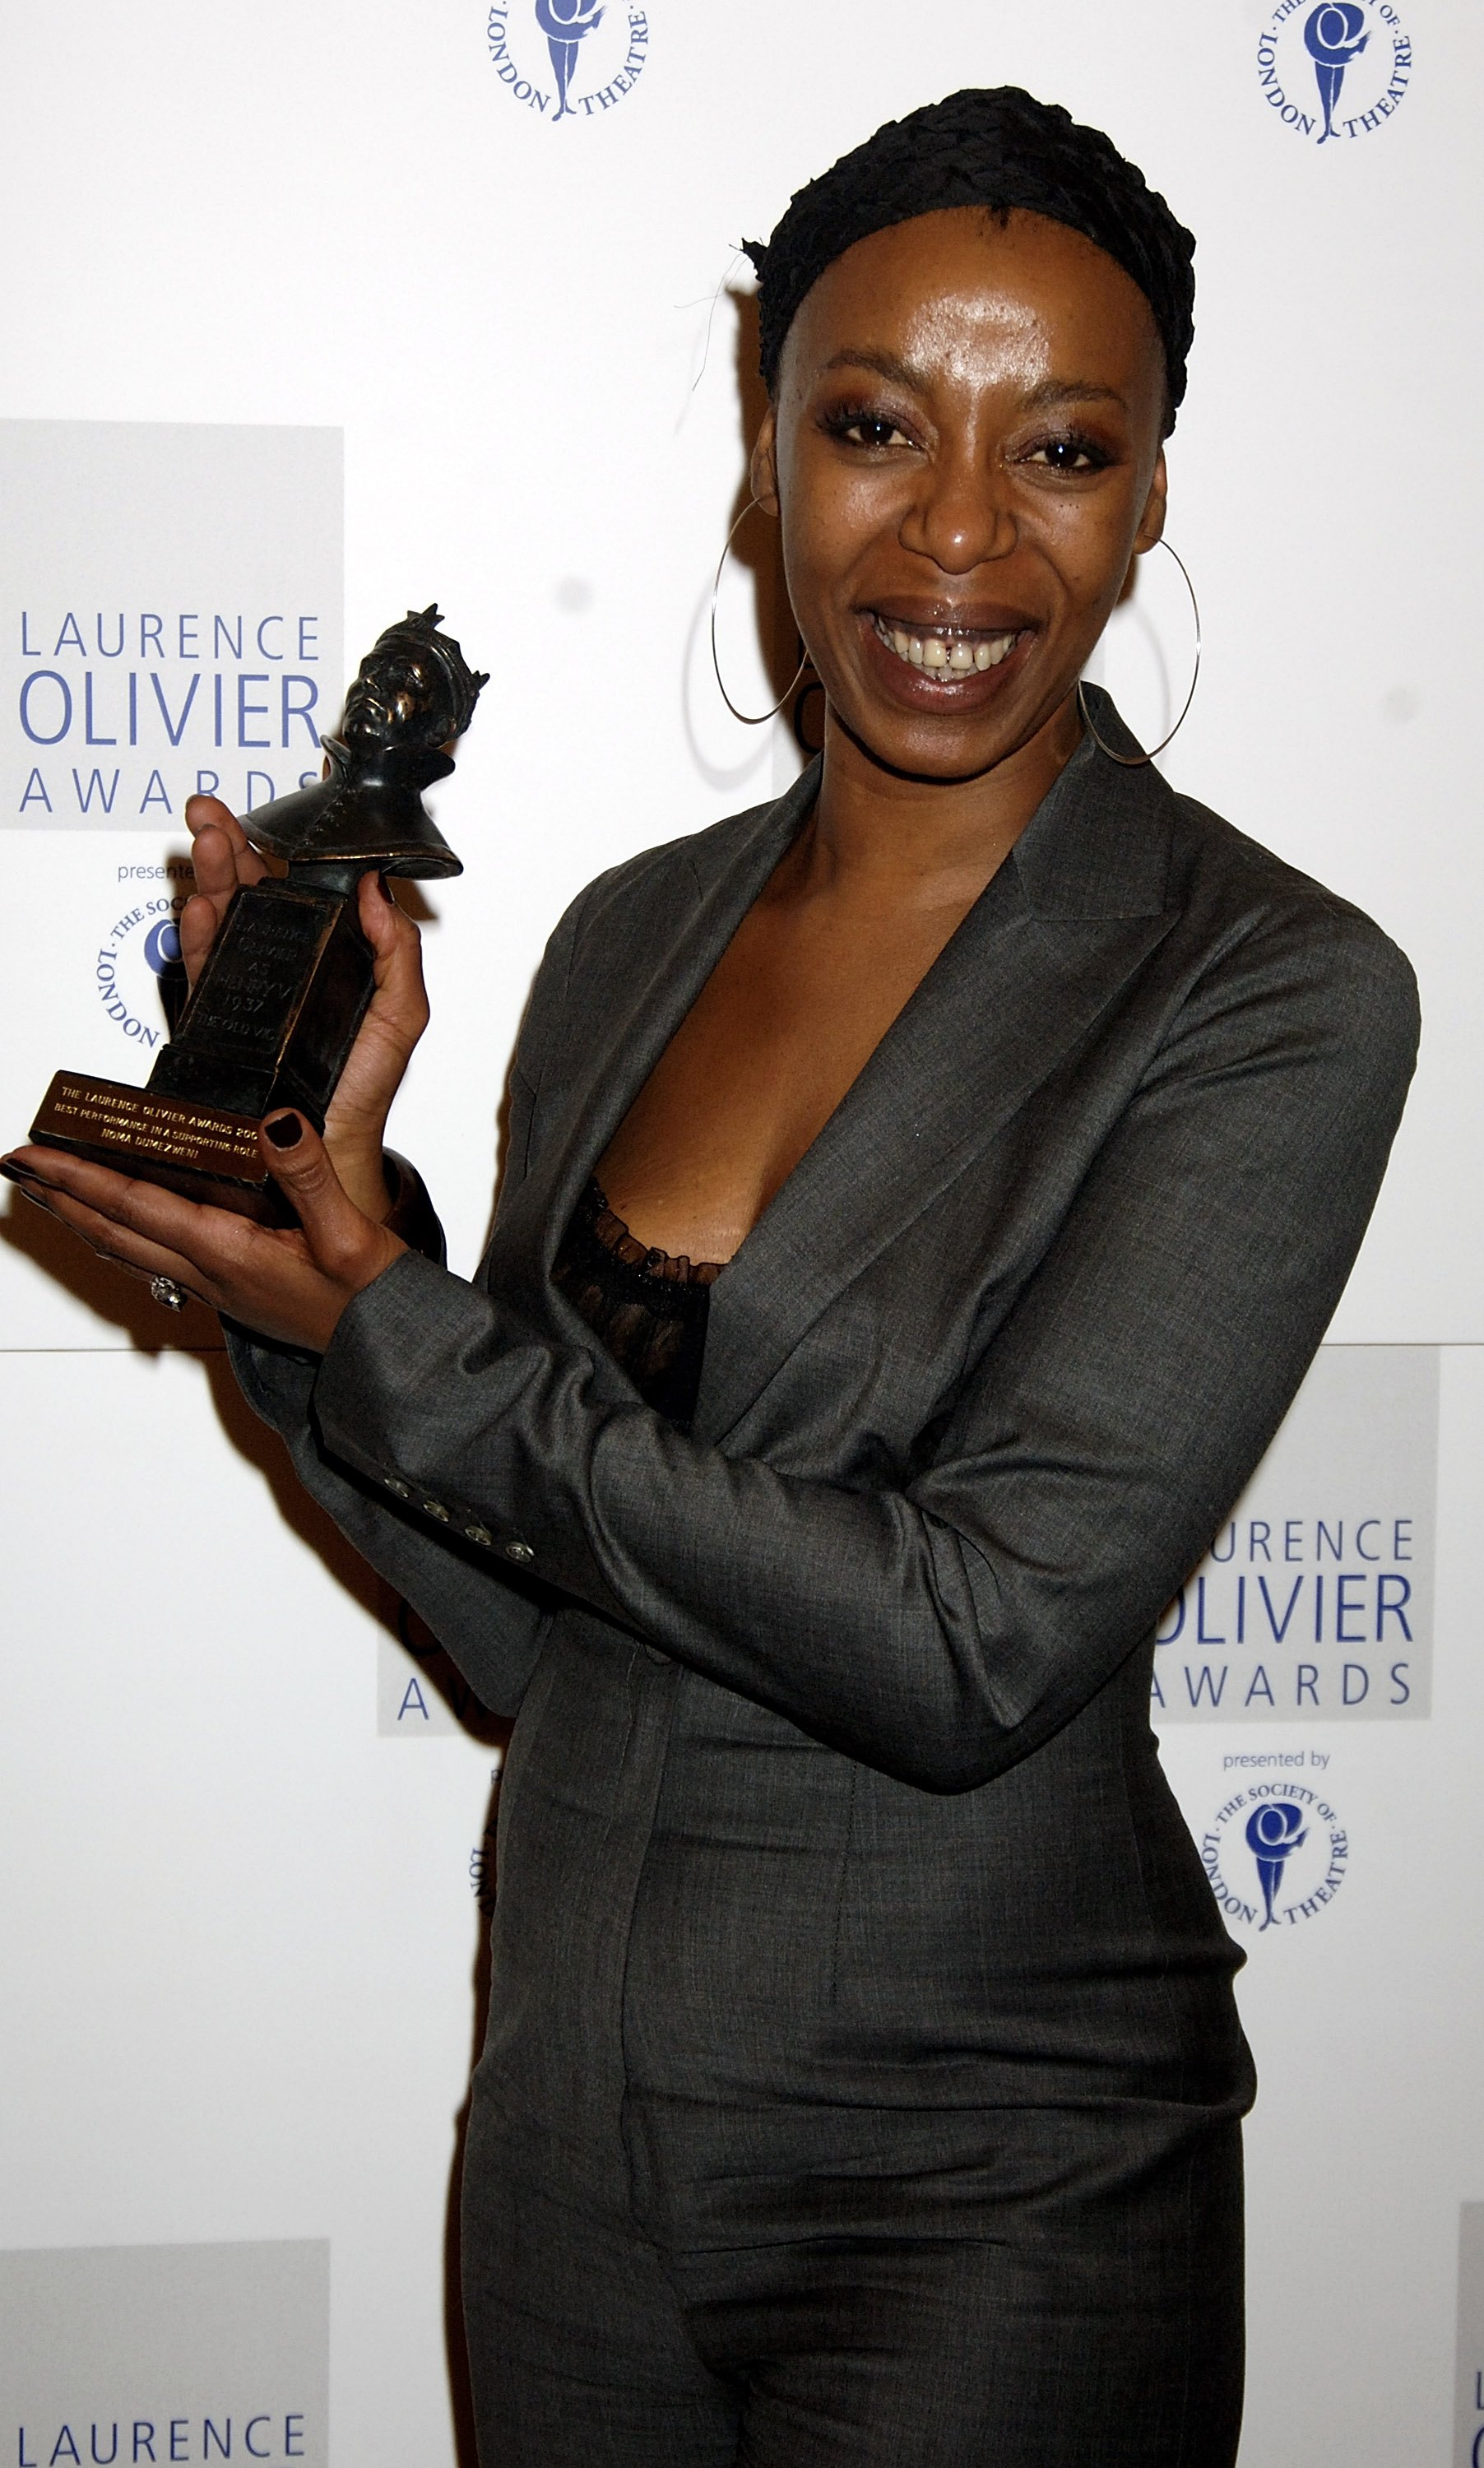 Noma Dumezweni poses with the award for Best Performance in a Supporting Role for at the Laurence Olivier Awards on Feb. 26, 2006 in London, England